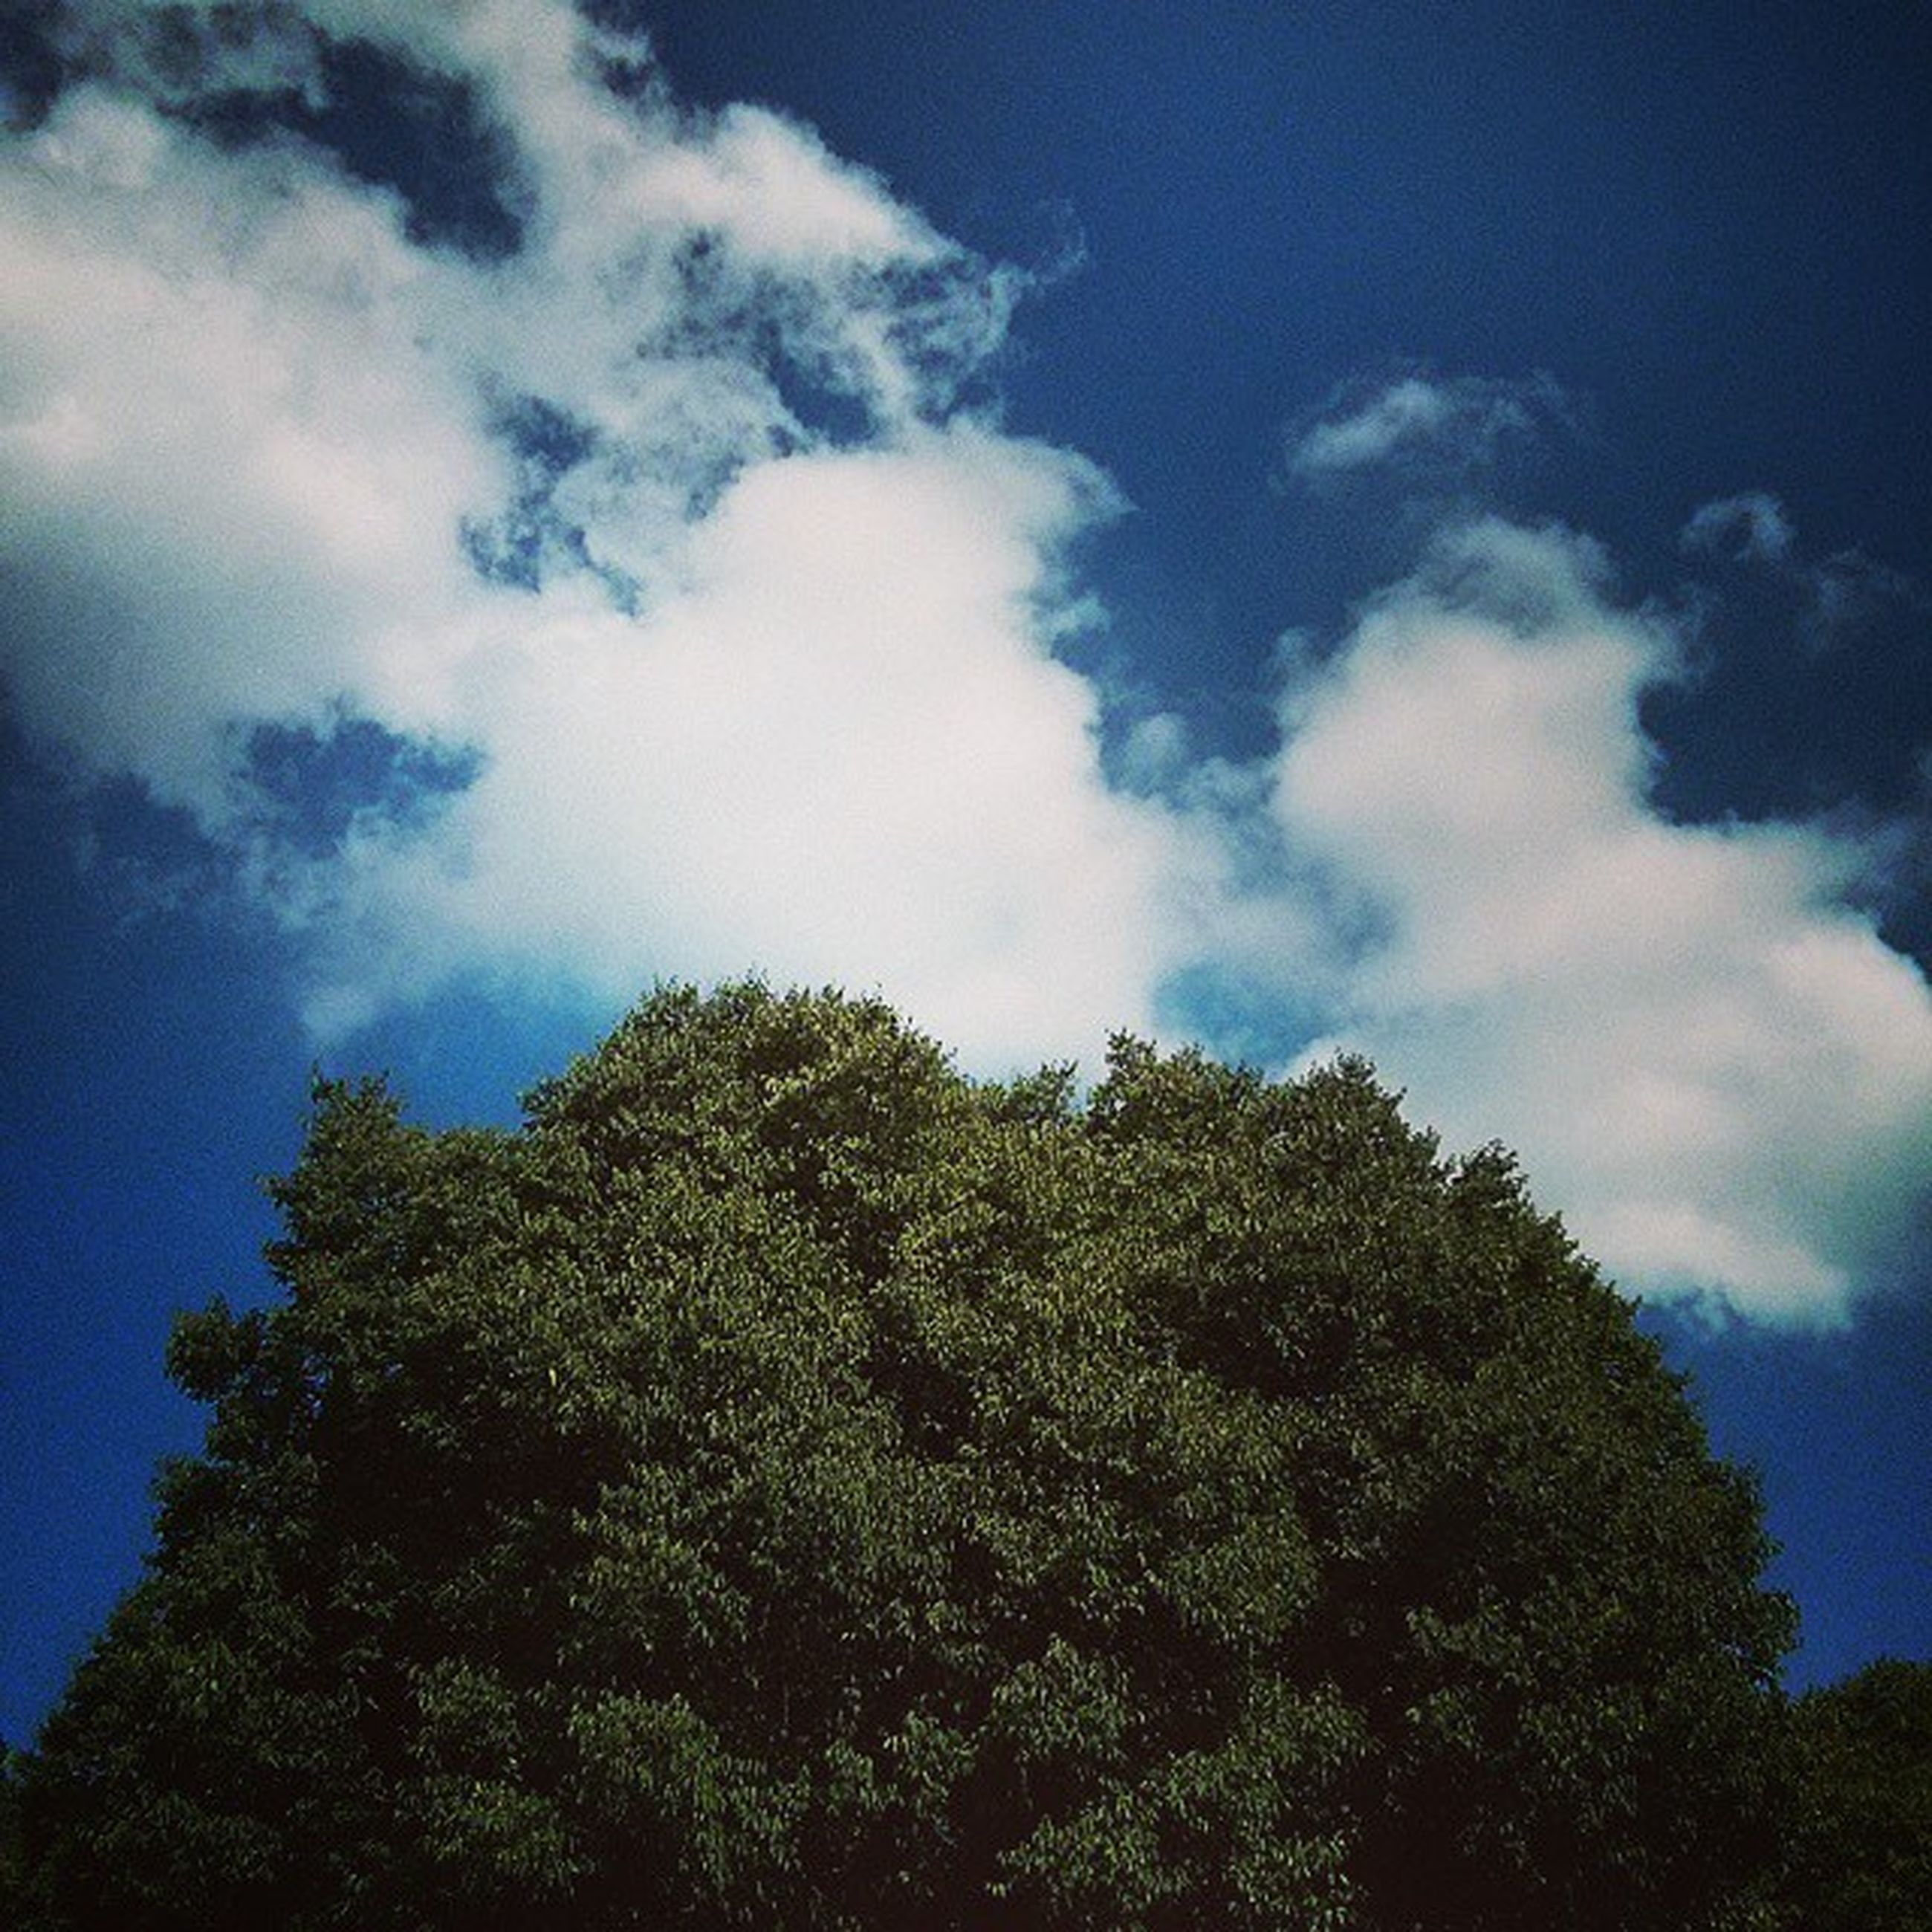 tree, low angle view, sky, growth, tranquility, beauty in nature, nature, blue, cloud - sky, tranquil scene, scenics, outdoors, no people, day, cloud, green color, idyllic, high section, forest, cloudy